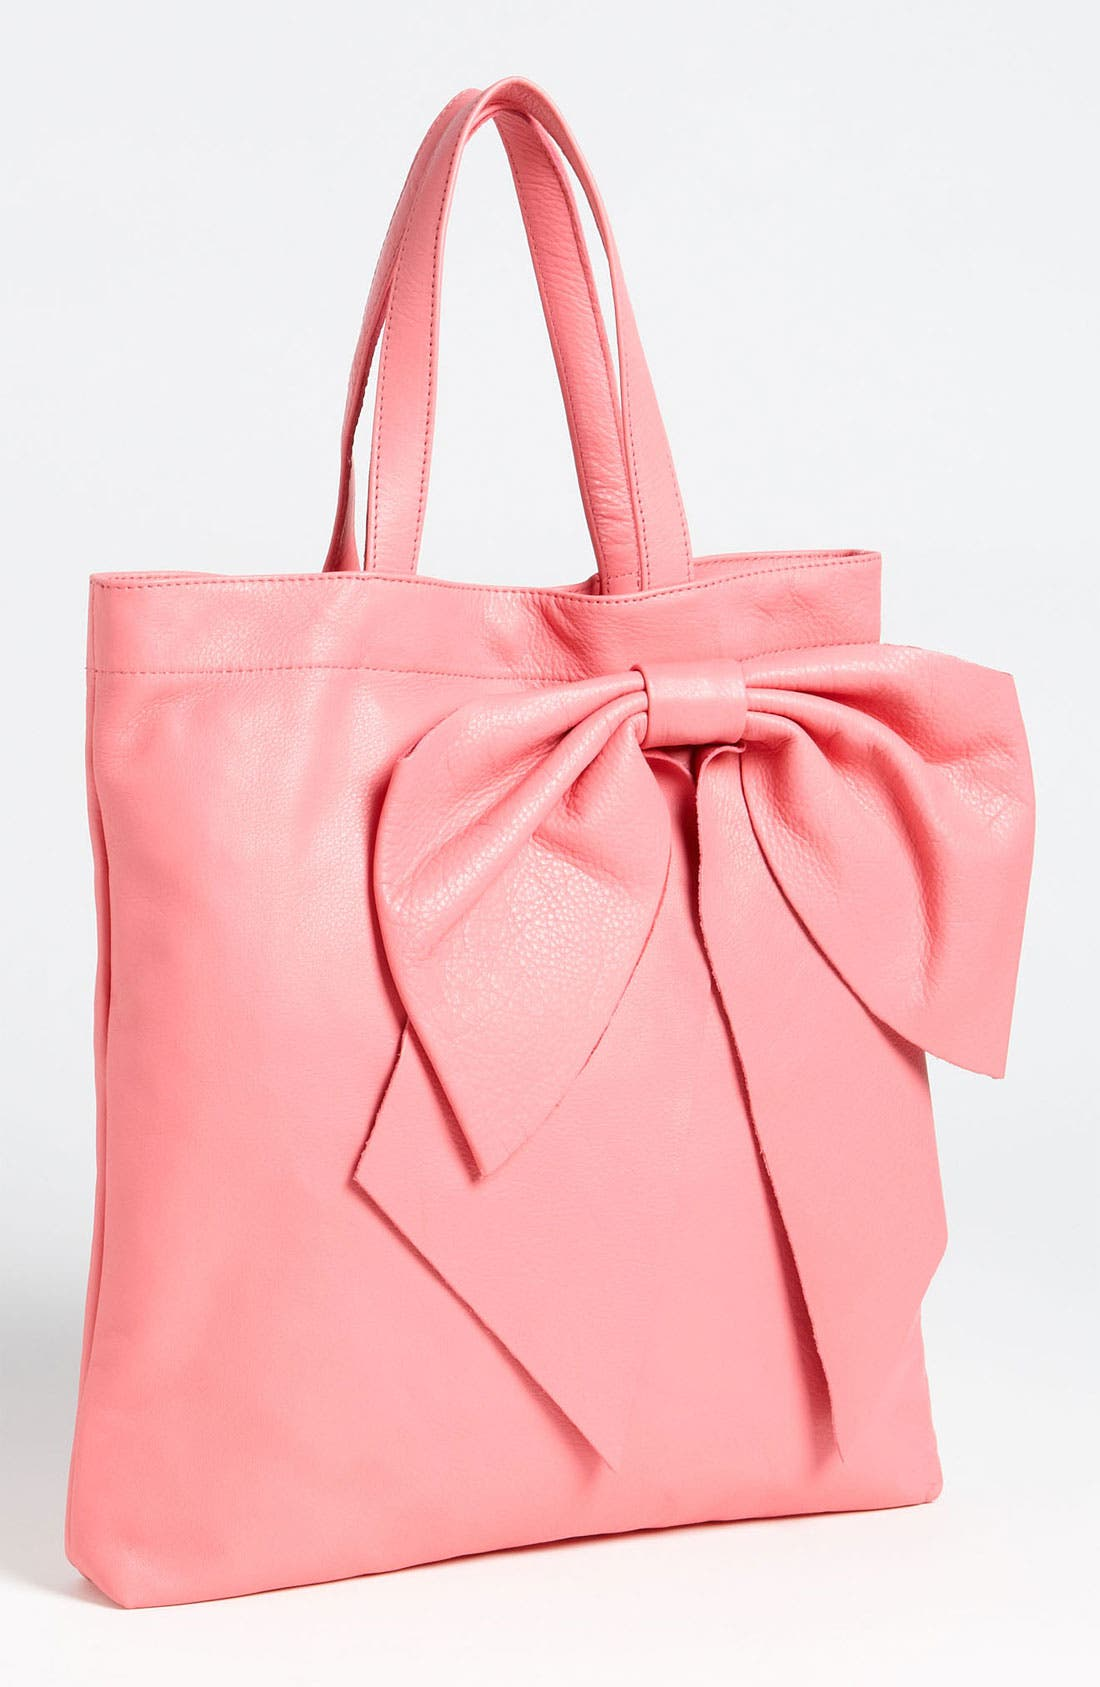 Alternate Image 1 Selected - RED Valentino 'Bow' Calfskin Tote